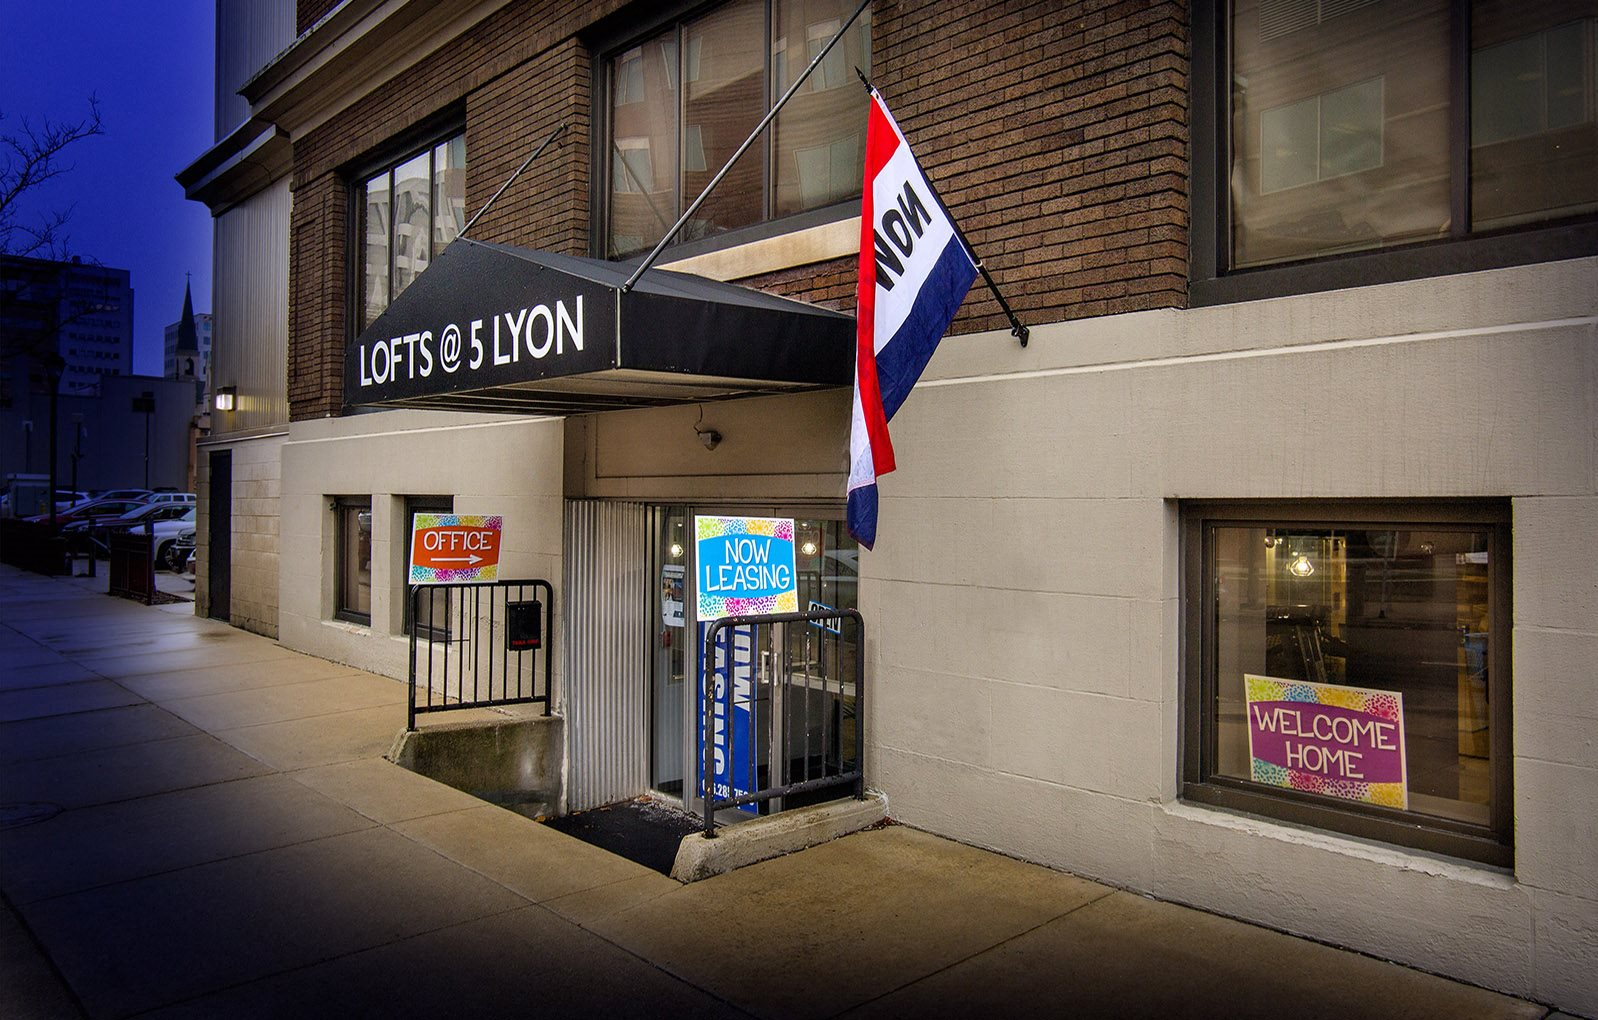 Lofts at 5 Lyon Entrance Grand Rapids